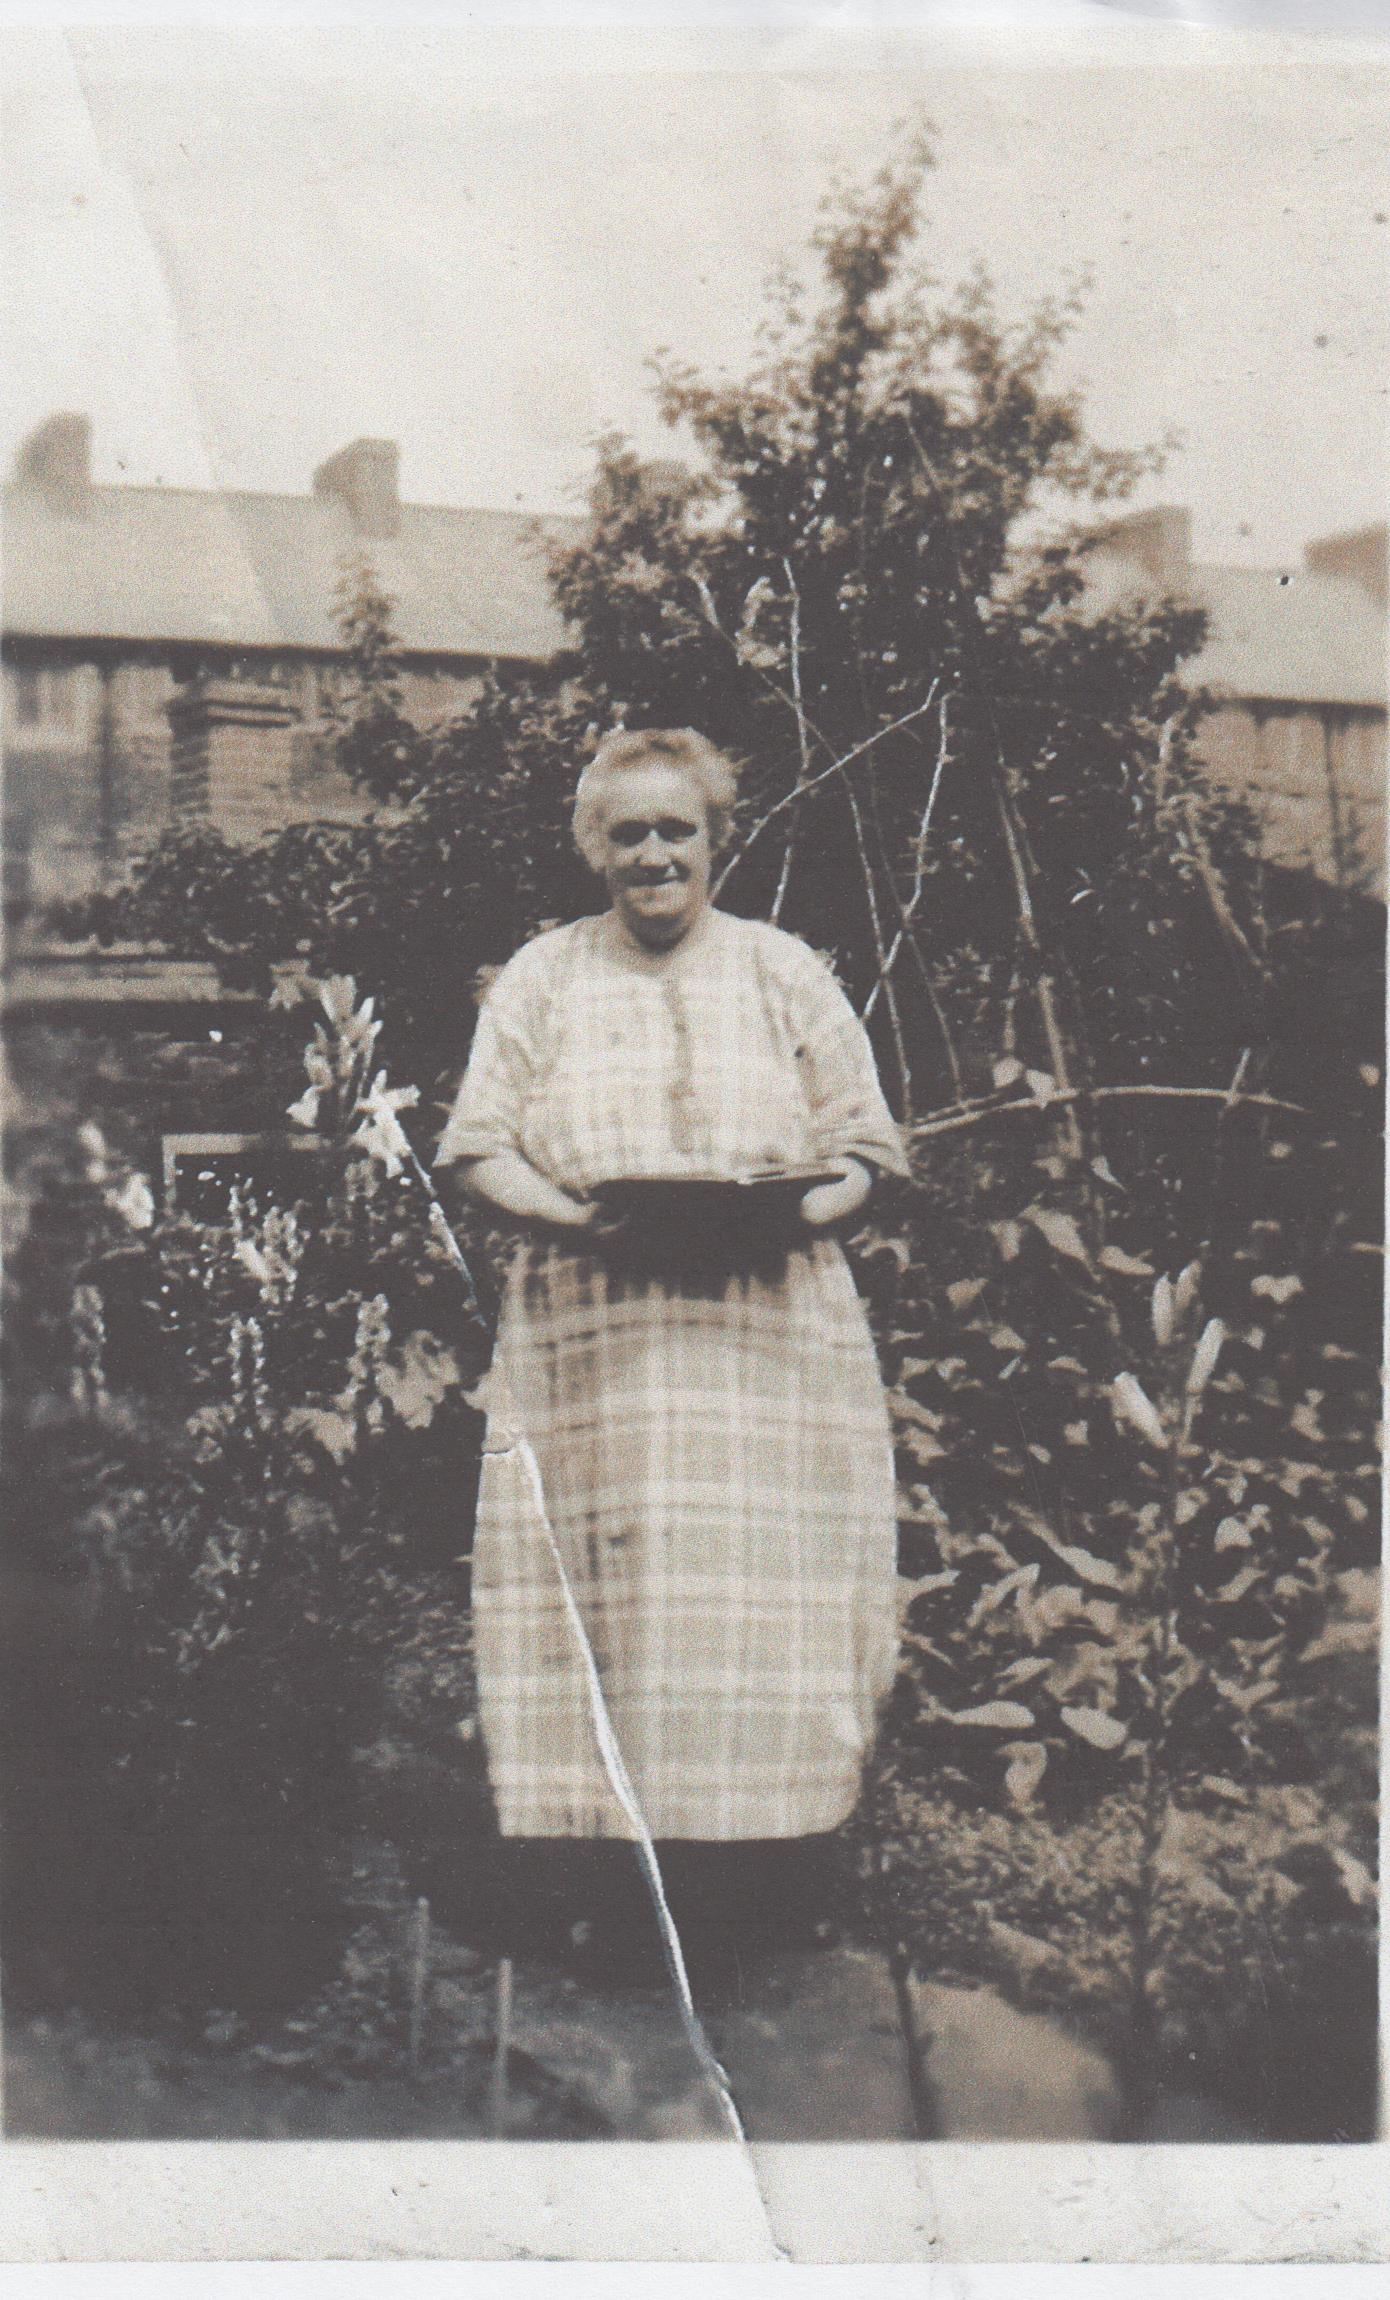 rose_spencer_with_rookery_behind_001.jpg